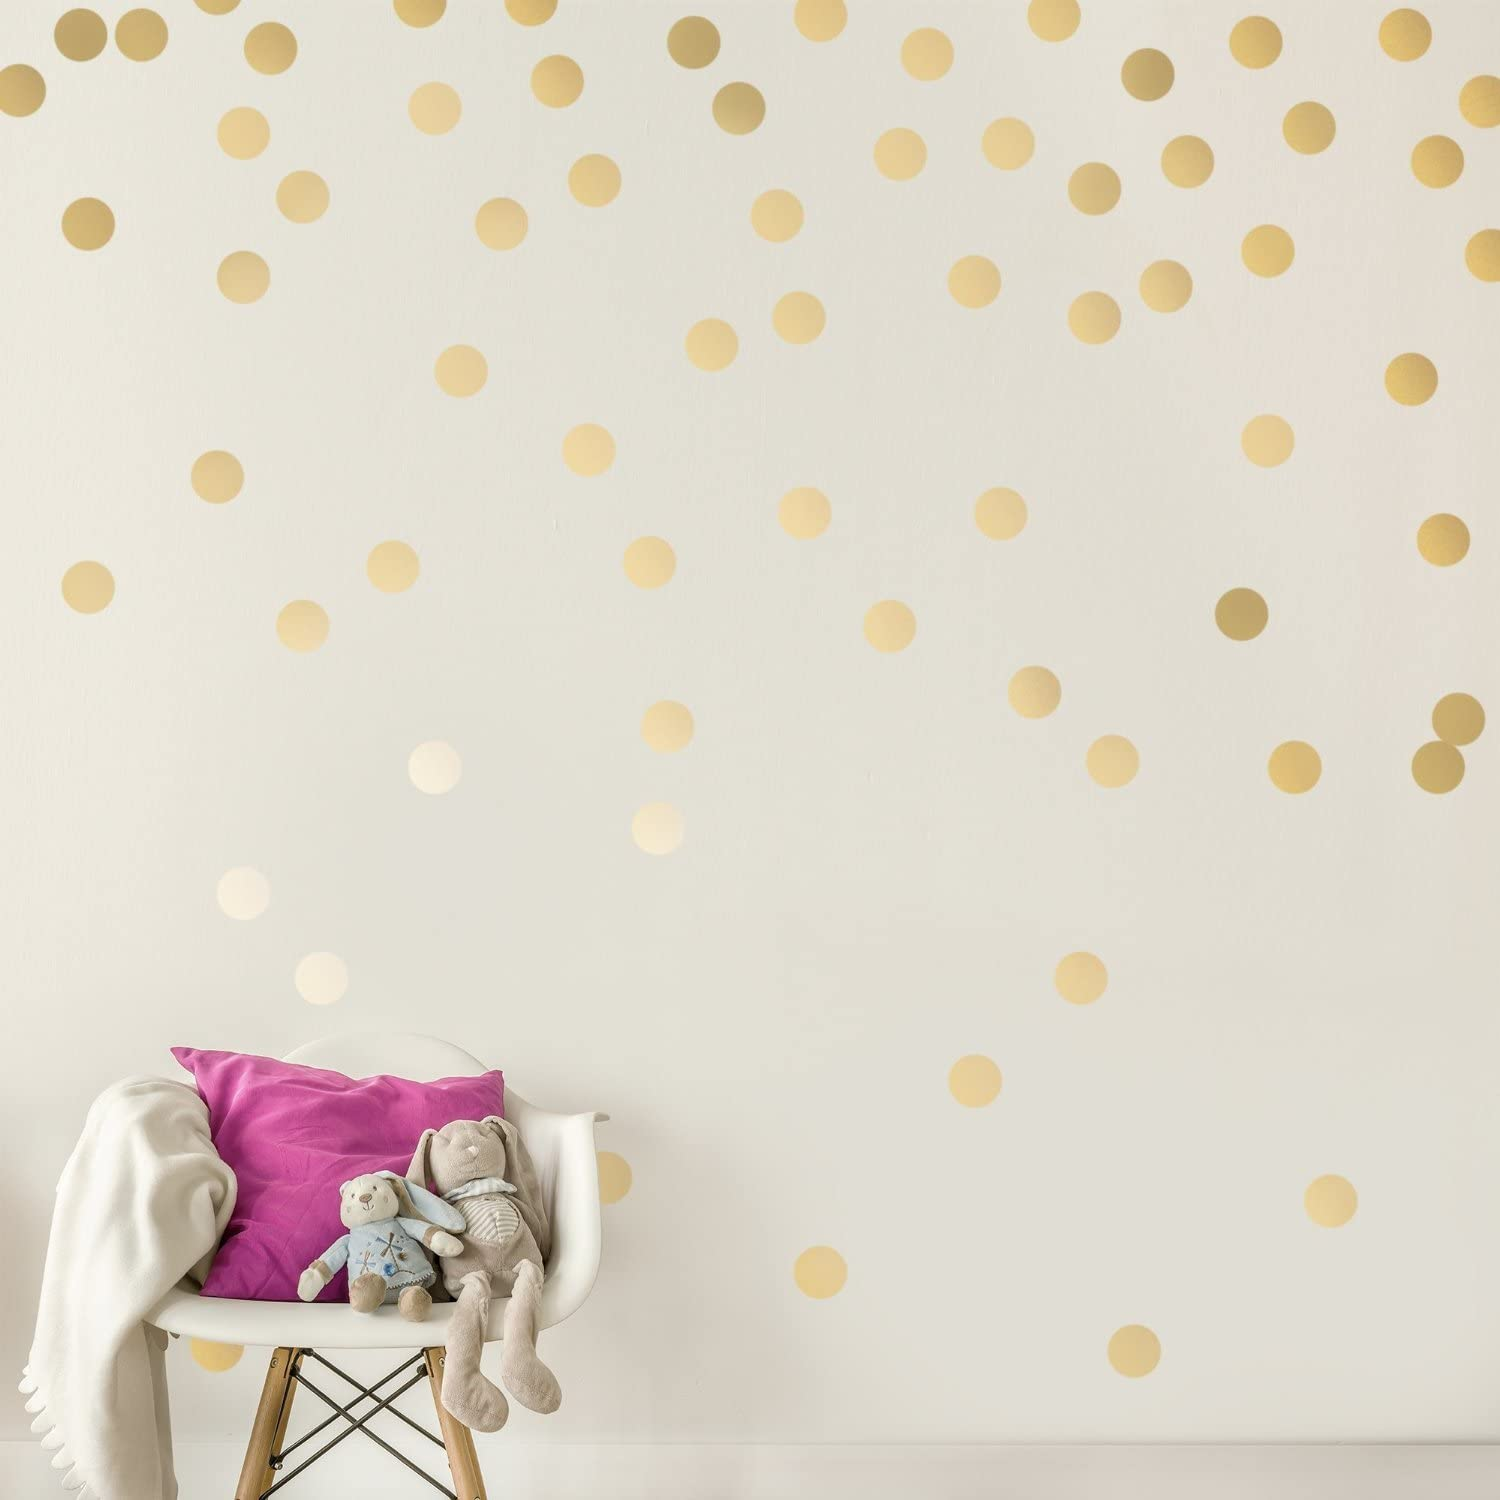 Easy Peel Stick Gold Wall Decal Dots 2 Inch 200 Decals Safe On Walls Paint Metallic Vinyl Polka Dot Decor Round Circle Art Glitter Stickers